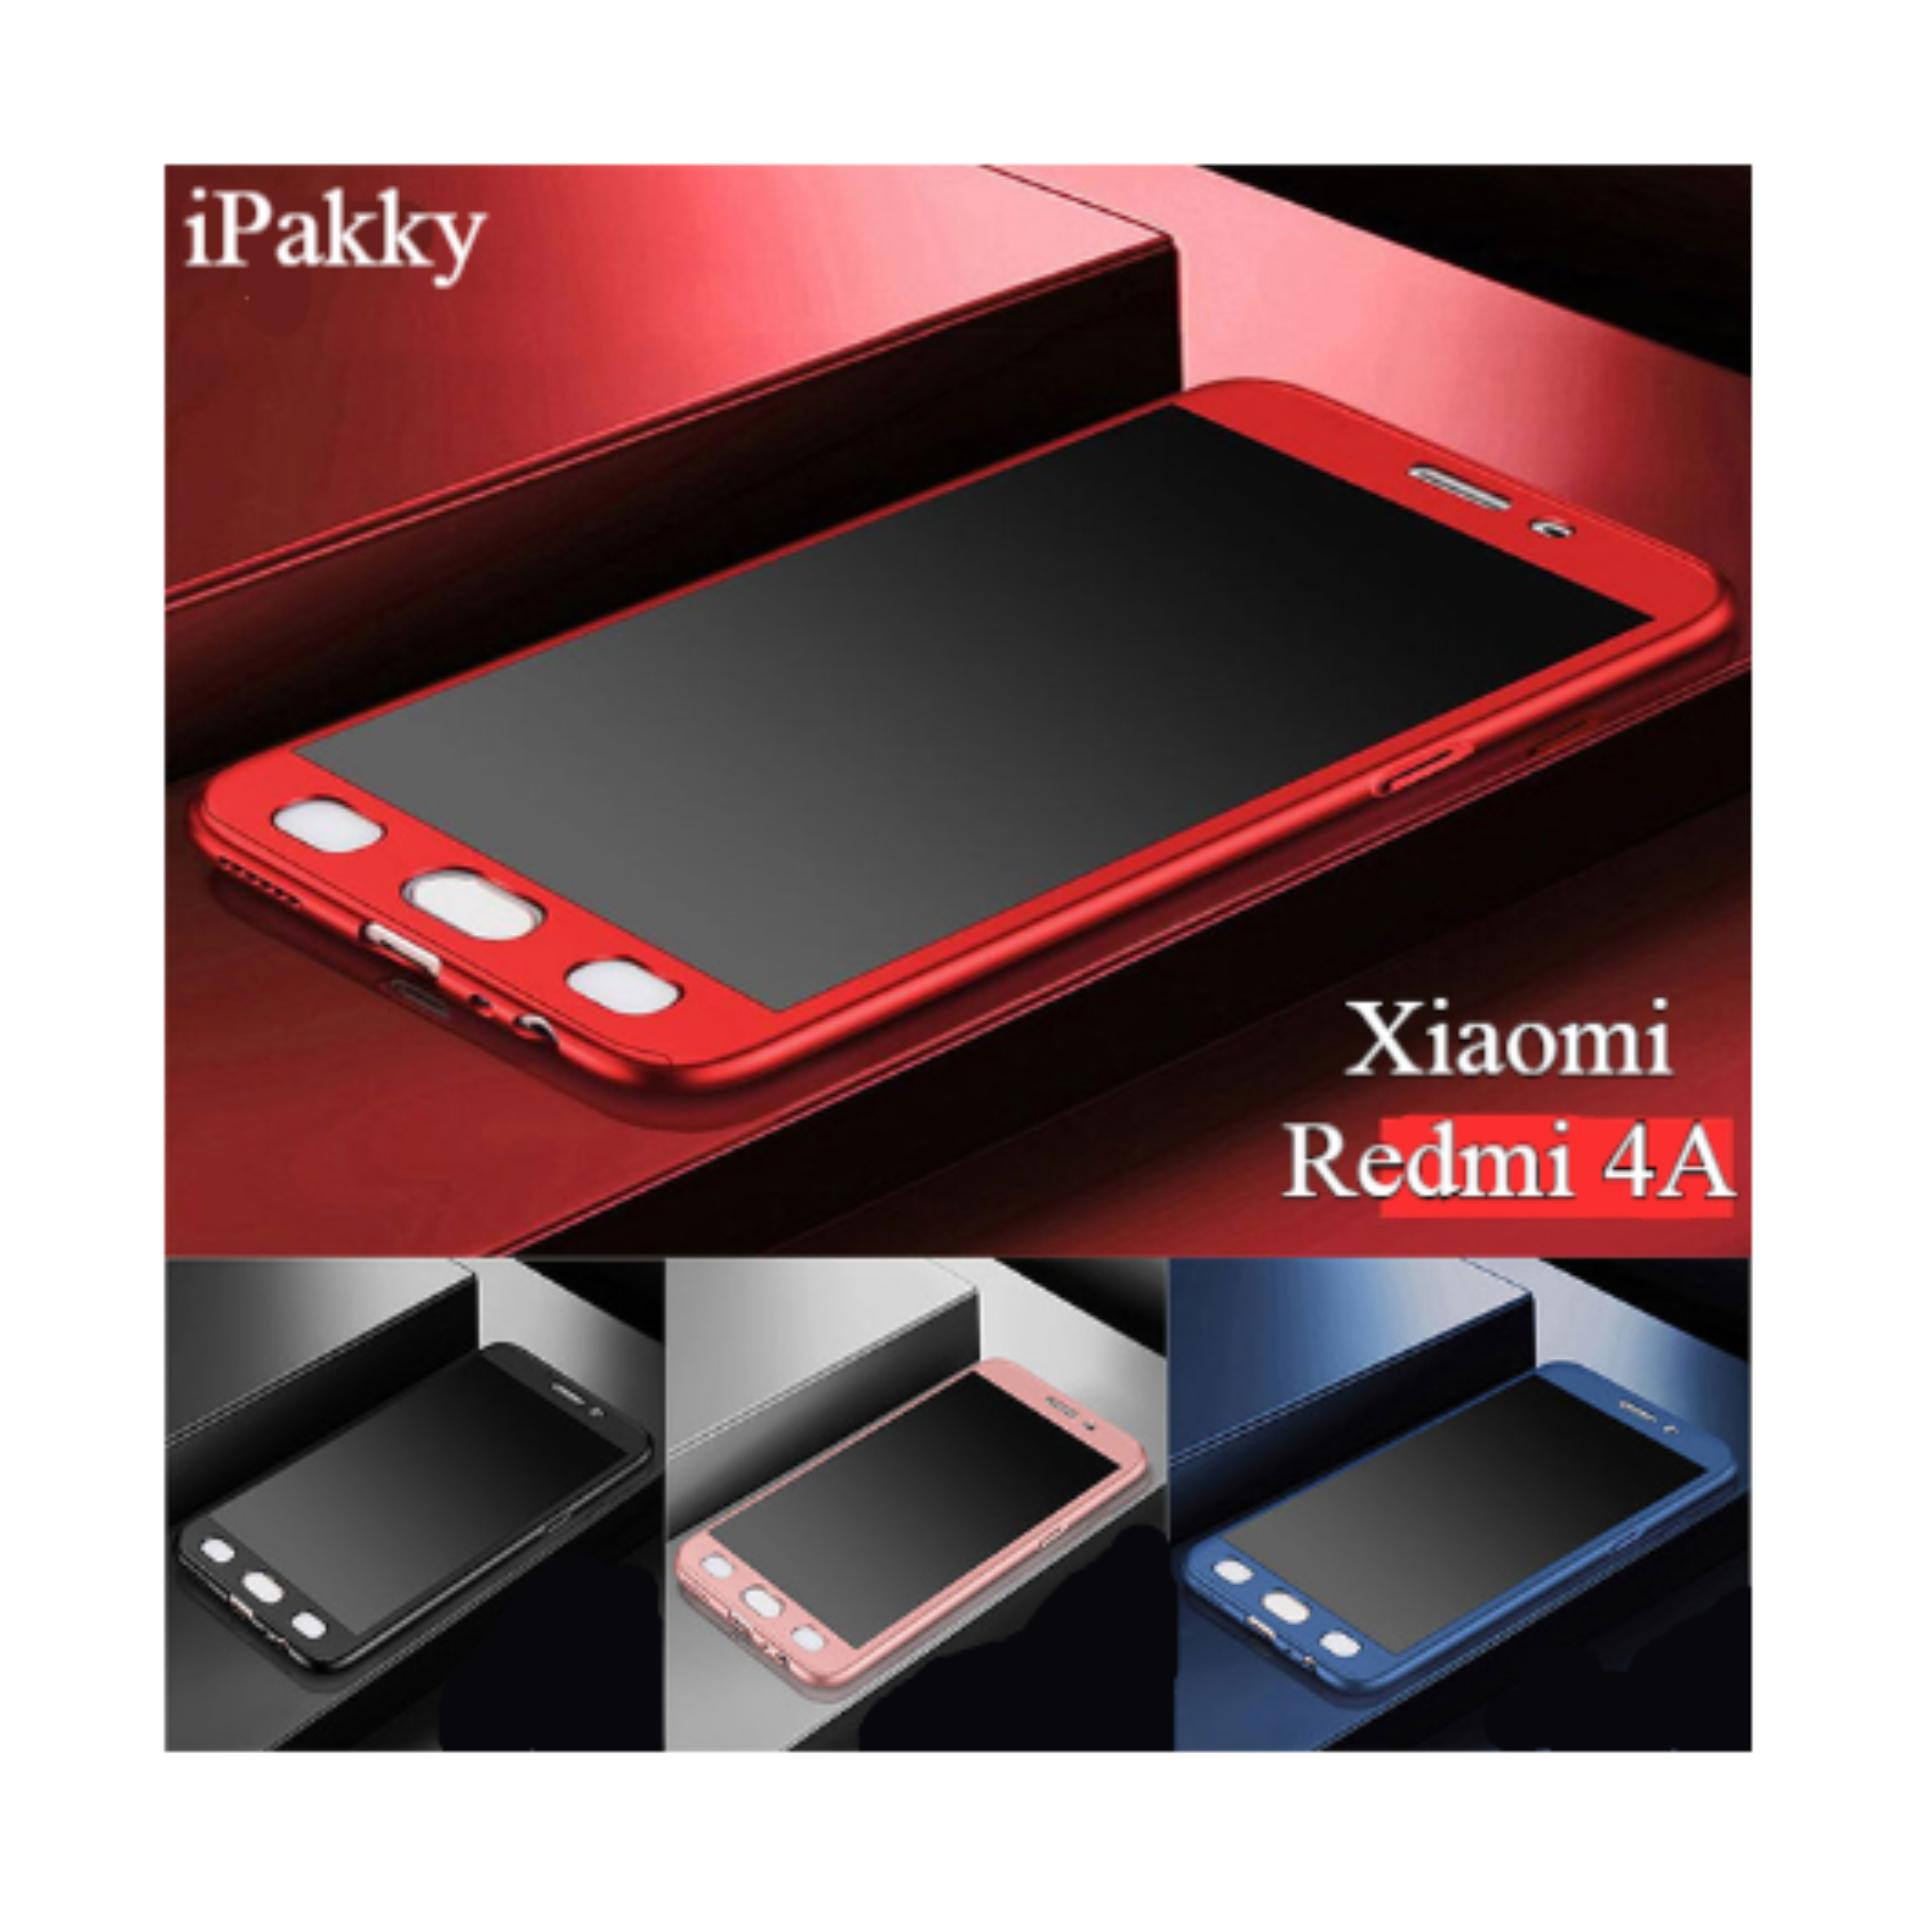 Jual Hardcase Ipaky Case Full Protection 360 Xiaomi Redmi 4A And Tempered Glass Gold Black Red Blue And Rose Gold Abs Satu Set